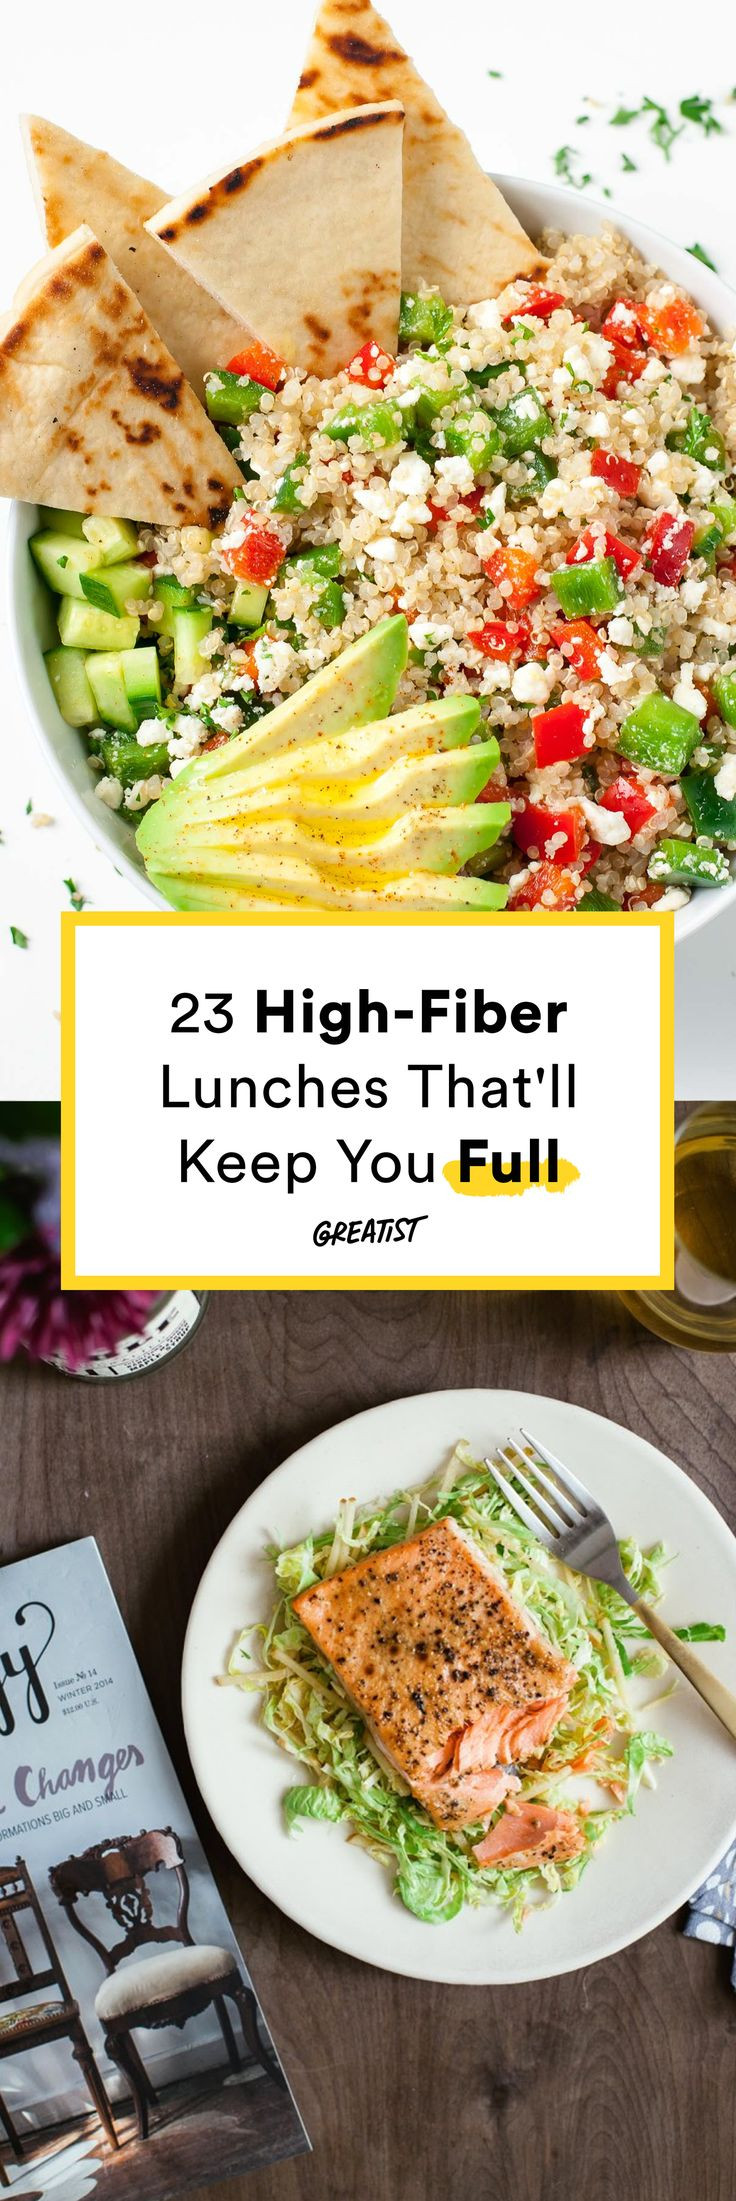 High Fiber Recipes For Lunch  Best 20 Diverticulitis recipes ideas on Pinterest